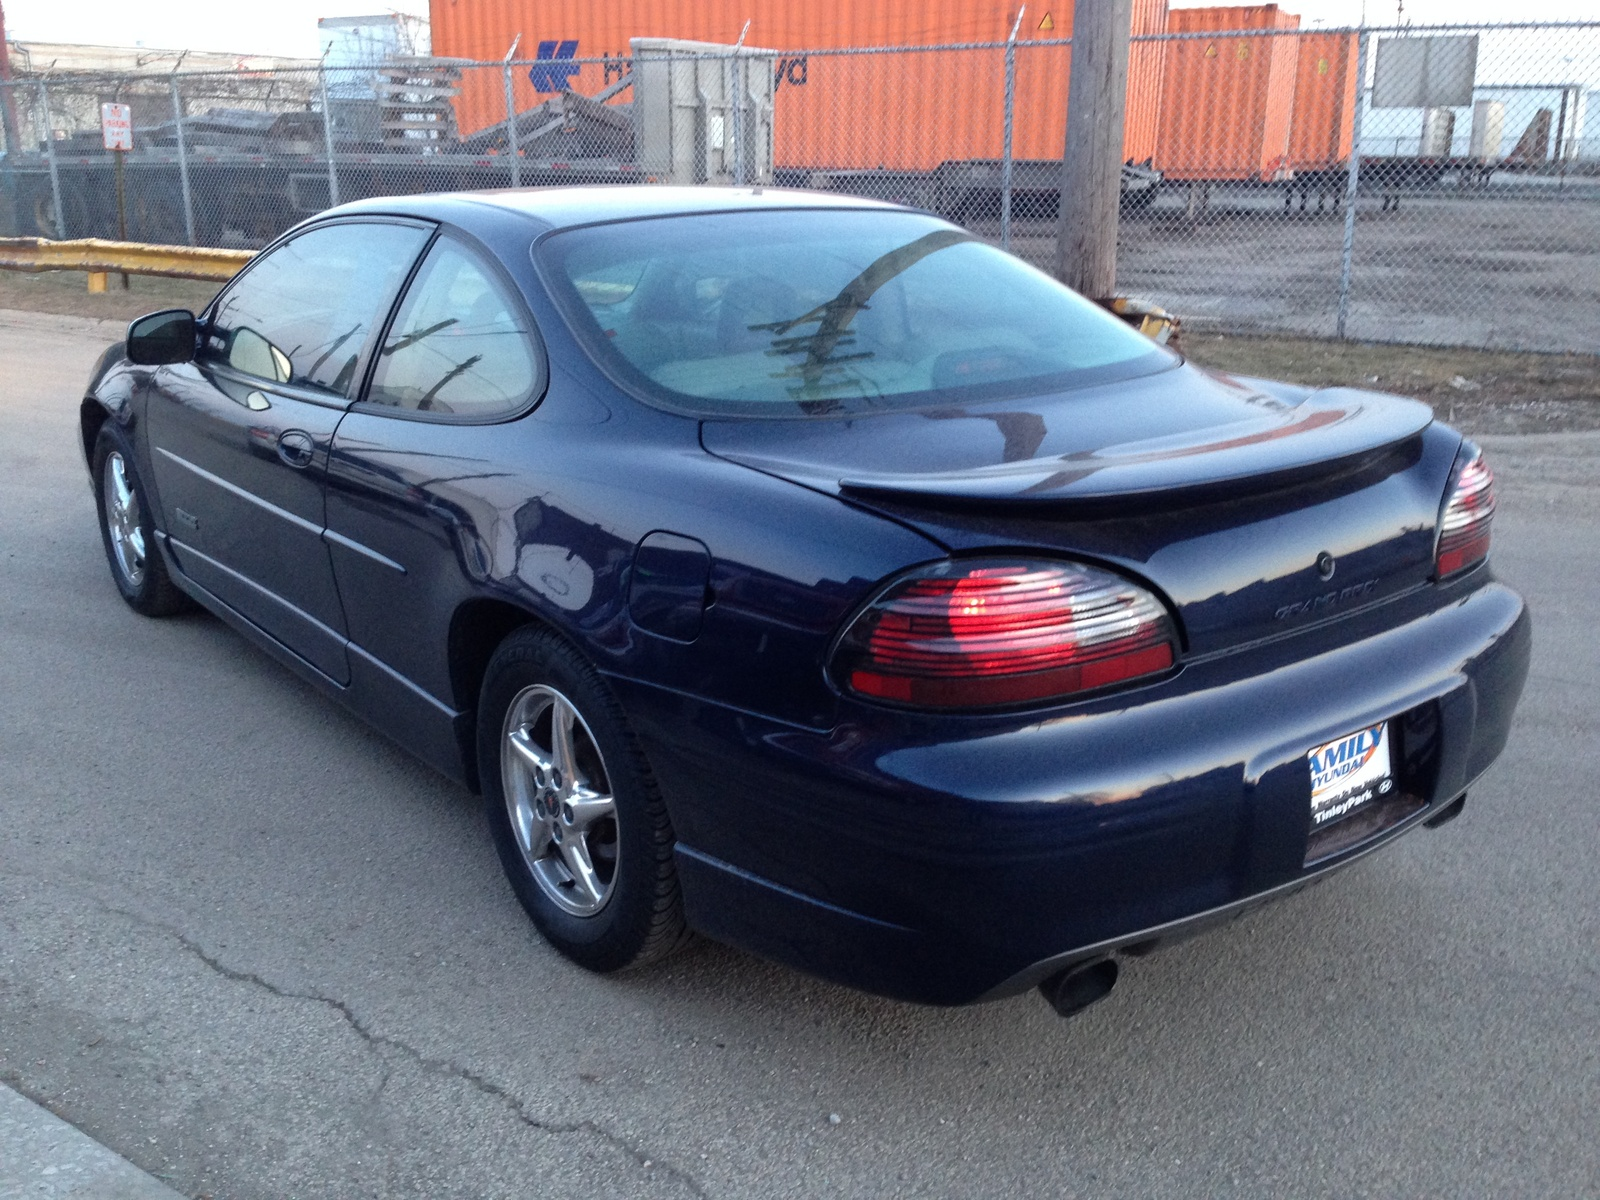 famous 2000 pontiac grand prix gtp coupe picture interior. Black Bedroom Furniture Sets. Home Design Ideas